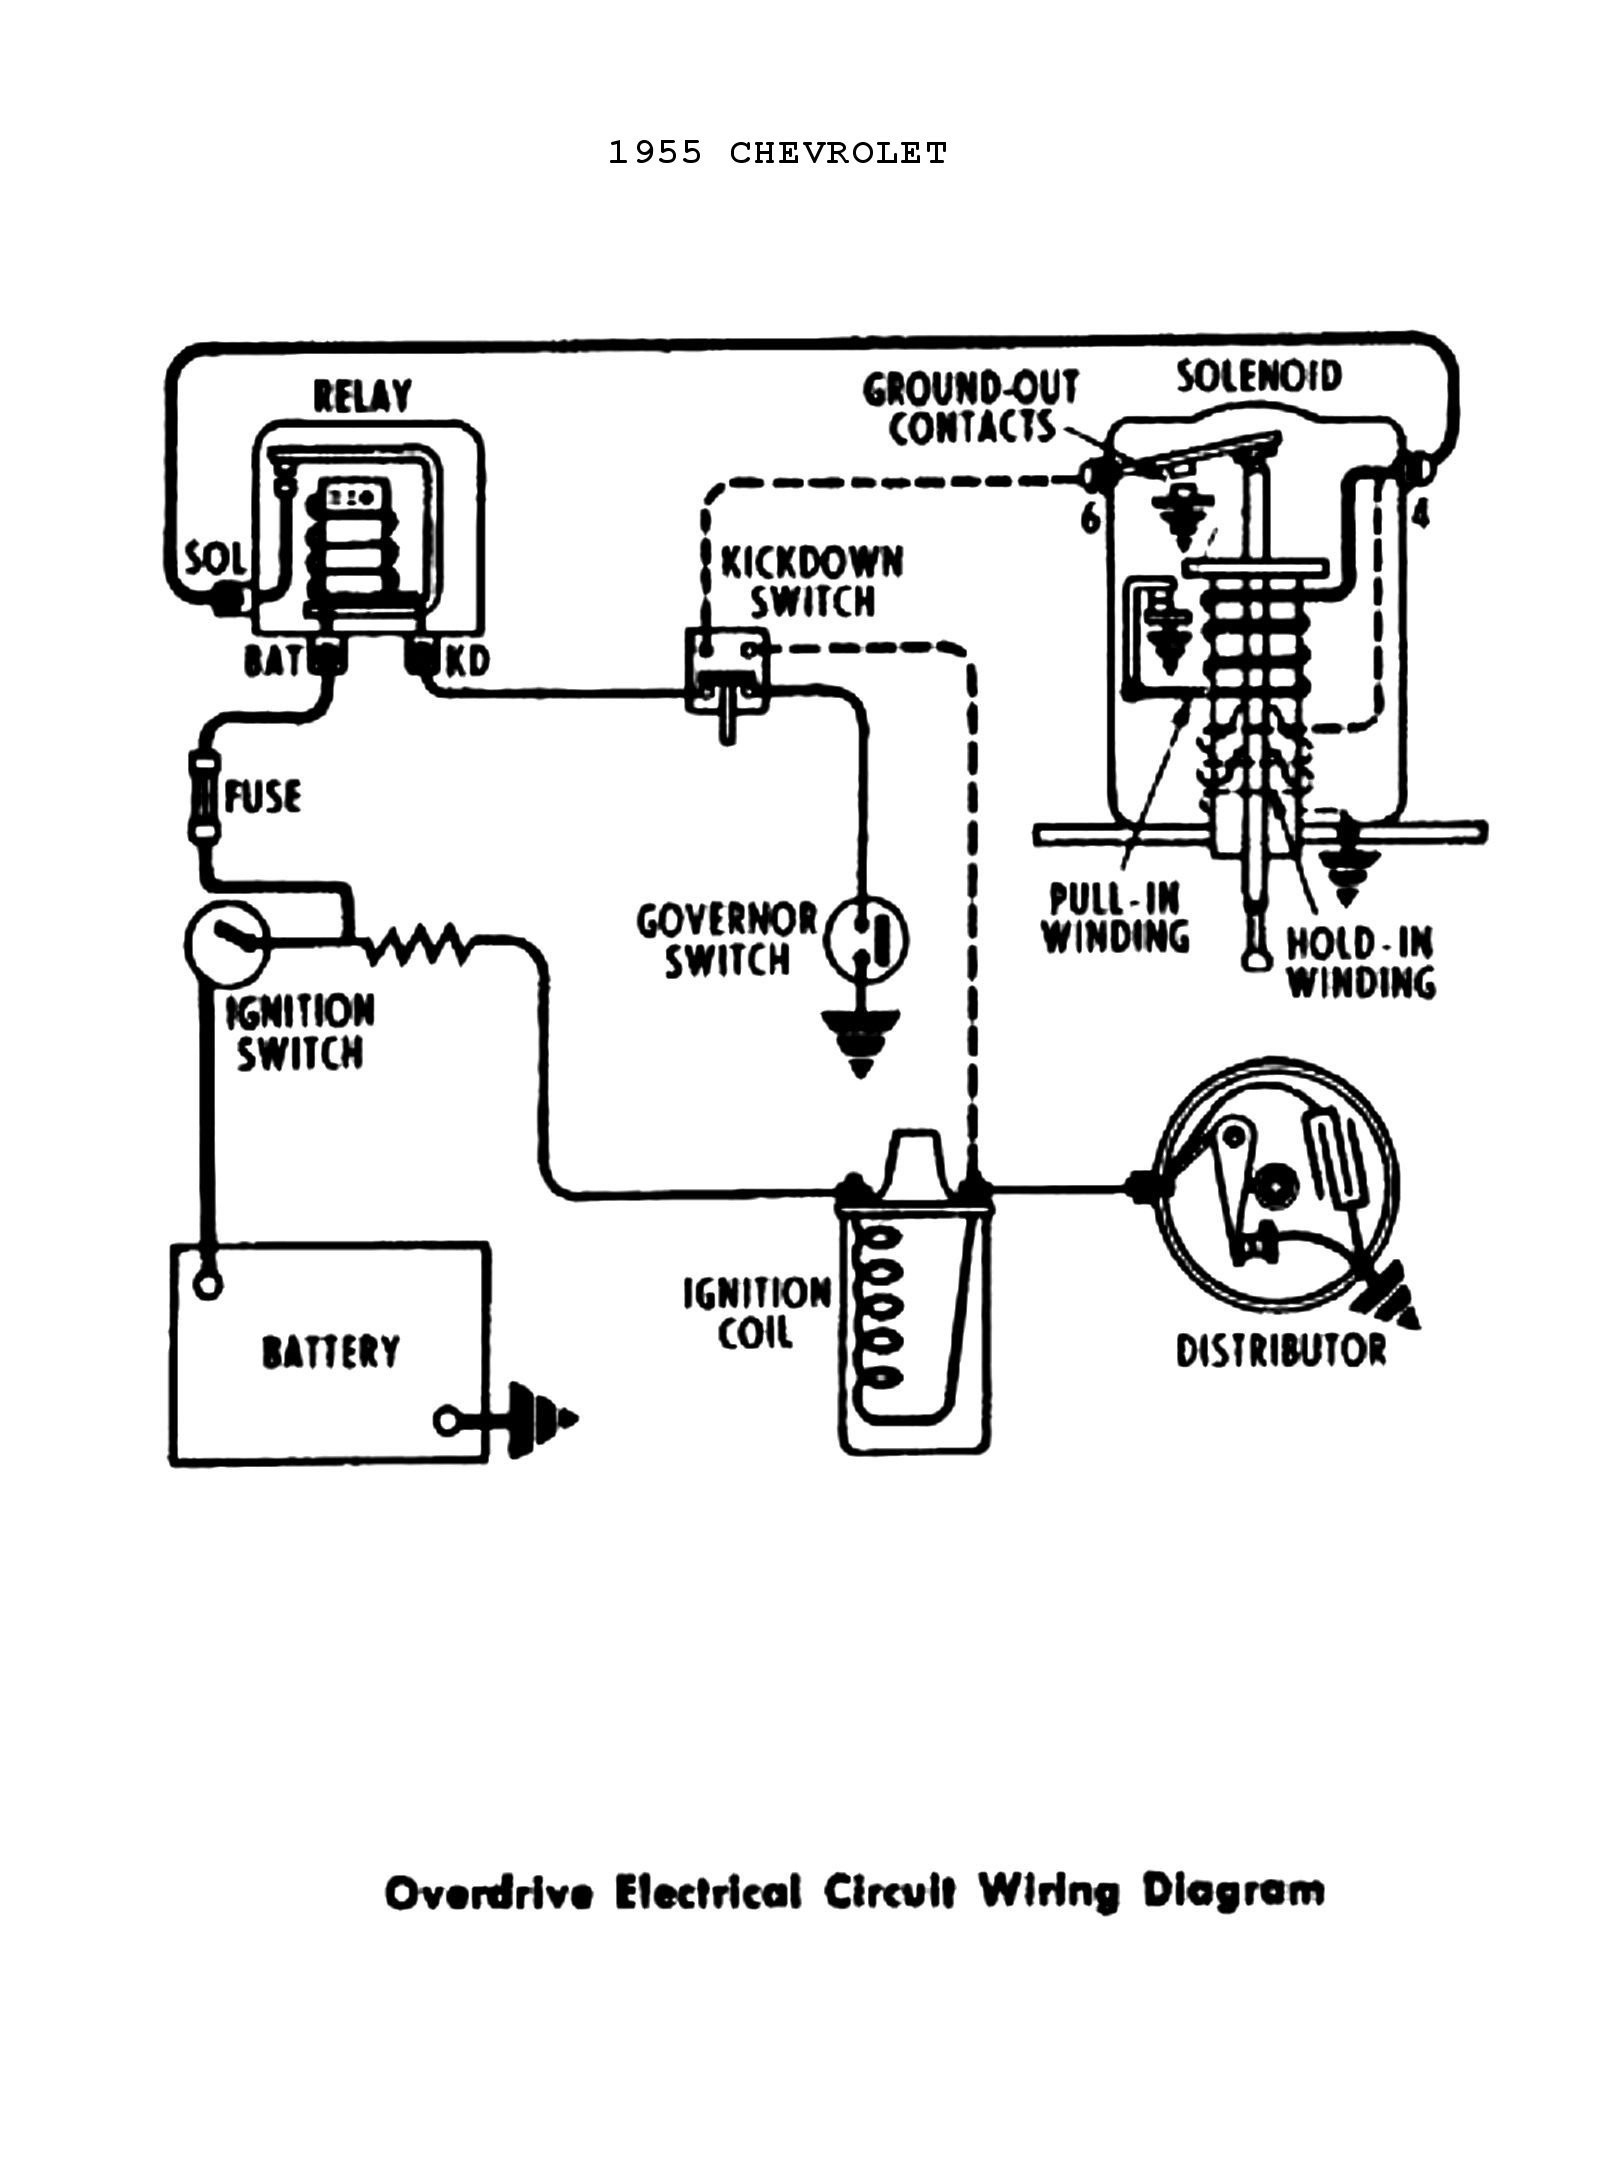 gm body control module wiring diagram | free wiring diagram gm wiring diagram gm wiring diagram color abbreviations #10